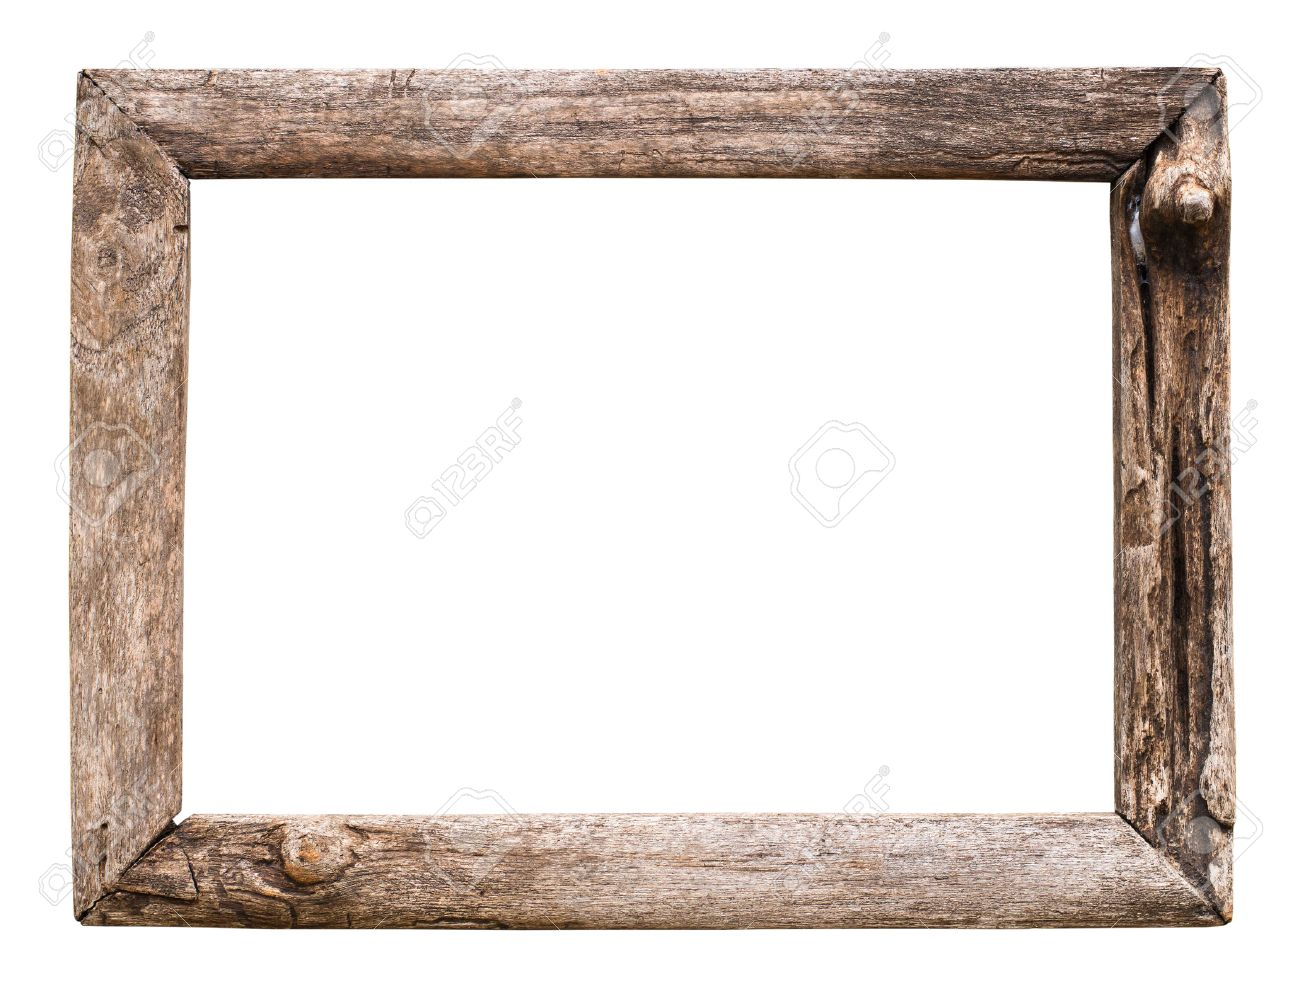 Old Wood Picture Frame Isolate On White Stock Photo, Picture And ...